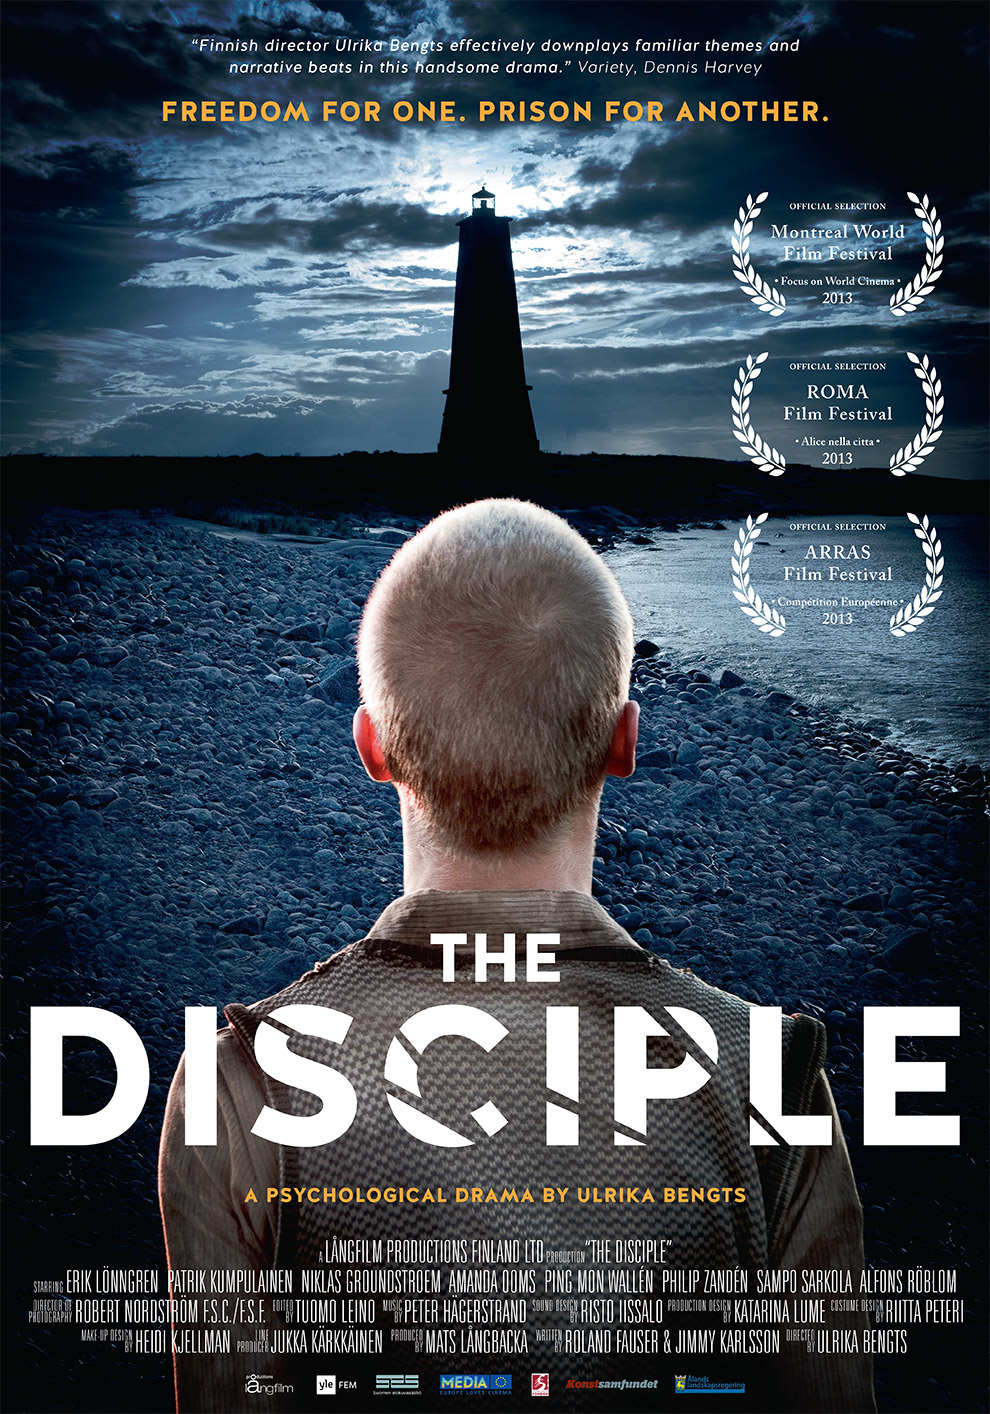 The Disciple - World premiere in Montreal International Film Festival and Finland's official selection committee as the Finnish contender for the Oscar Awards in 2013